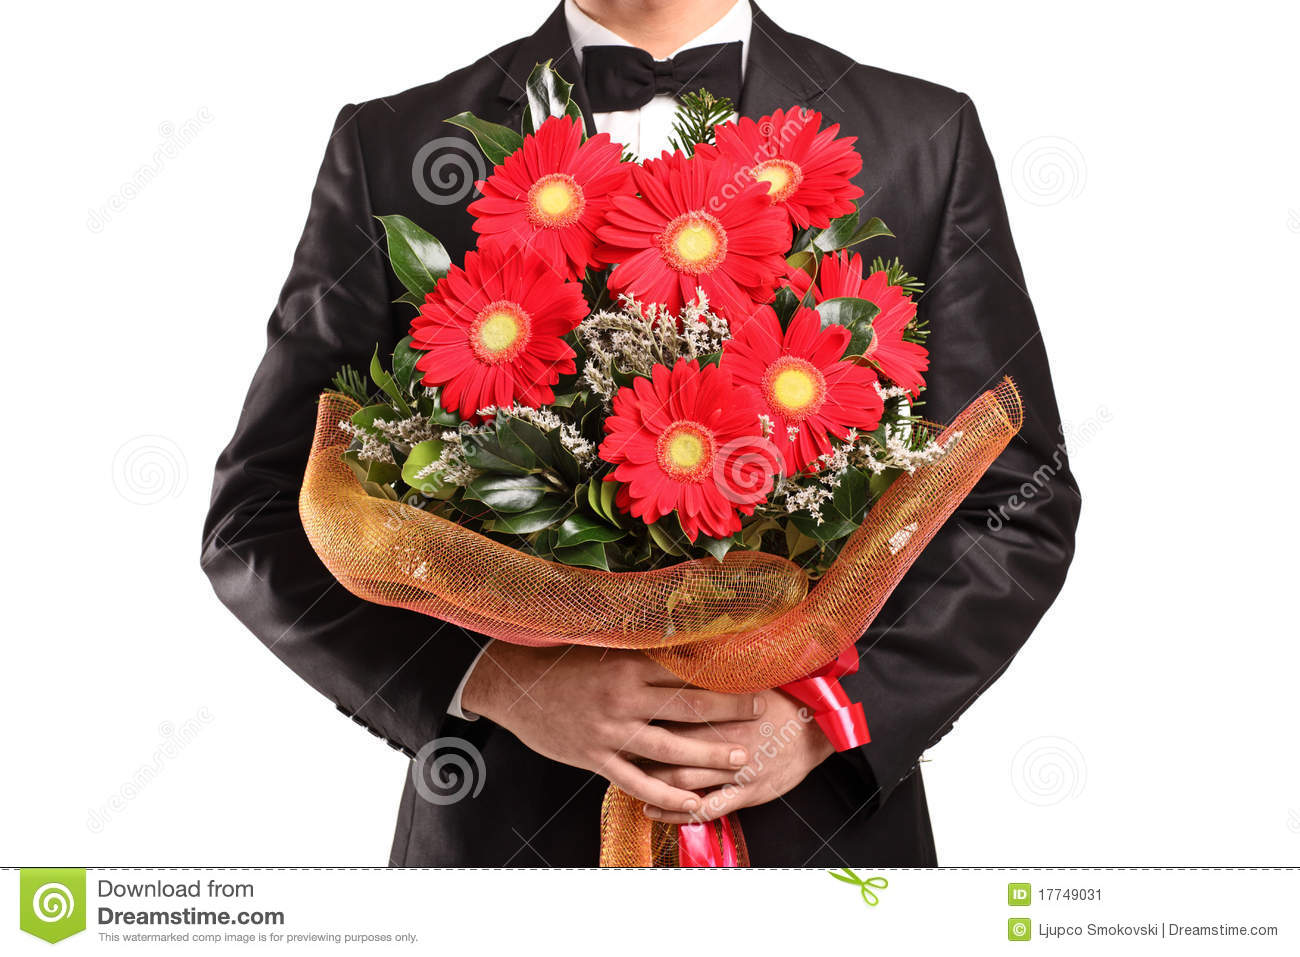 A man holding a large bouquet of flowers stock image image of download a man holding a large bouquet of flowers stock image image of bouquet izmirmasajfo